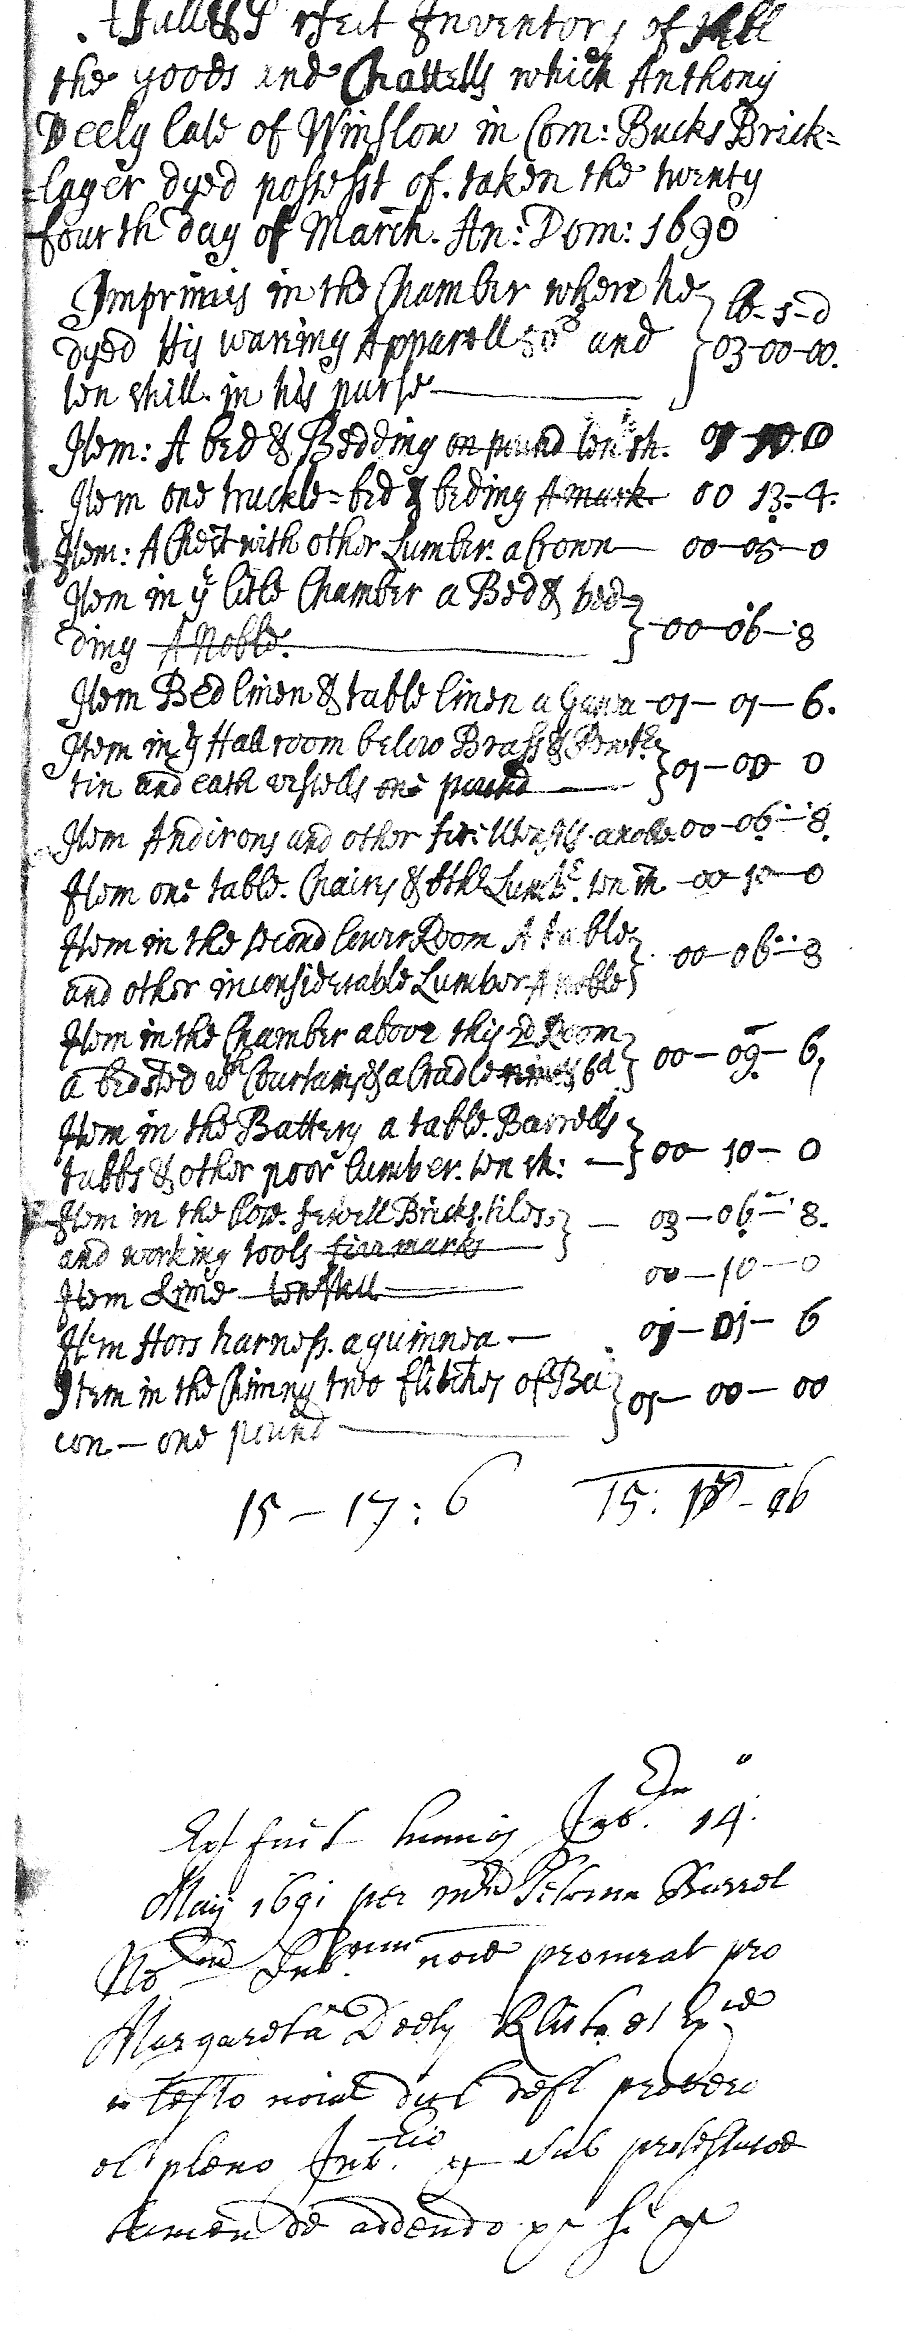 Inventory of Anthony Deely